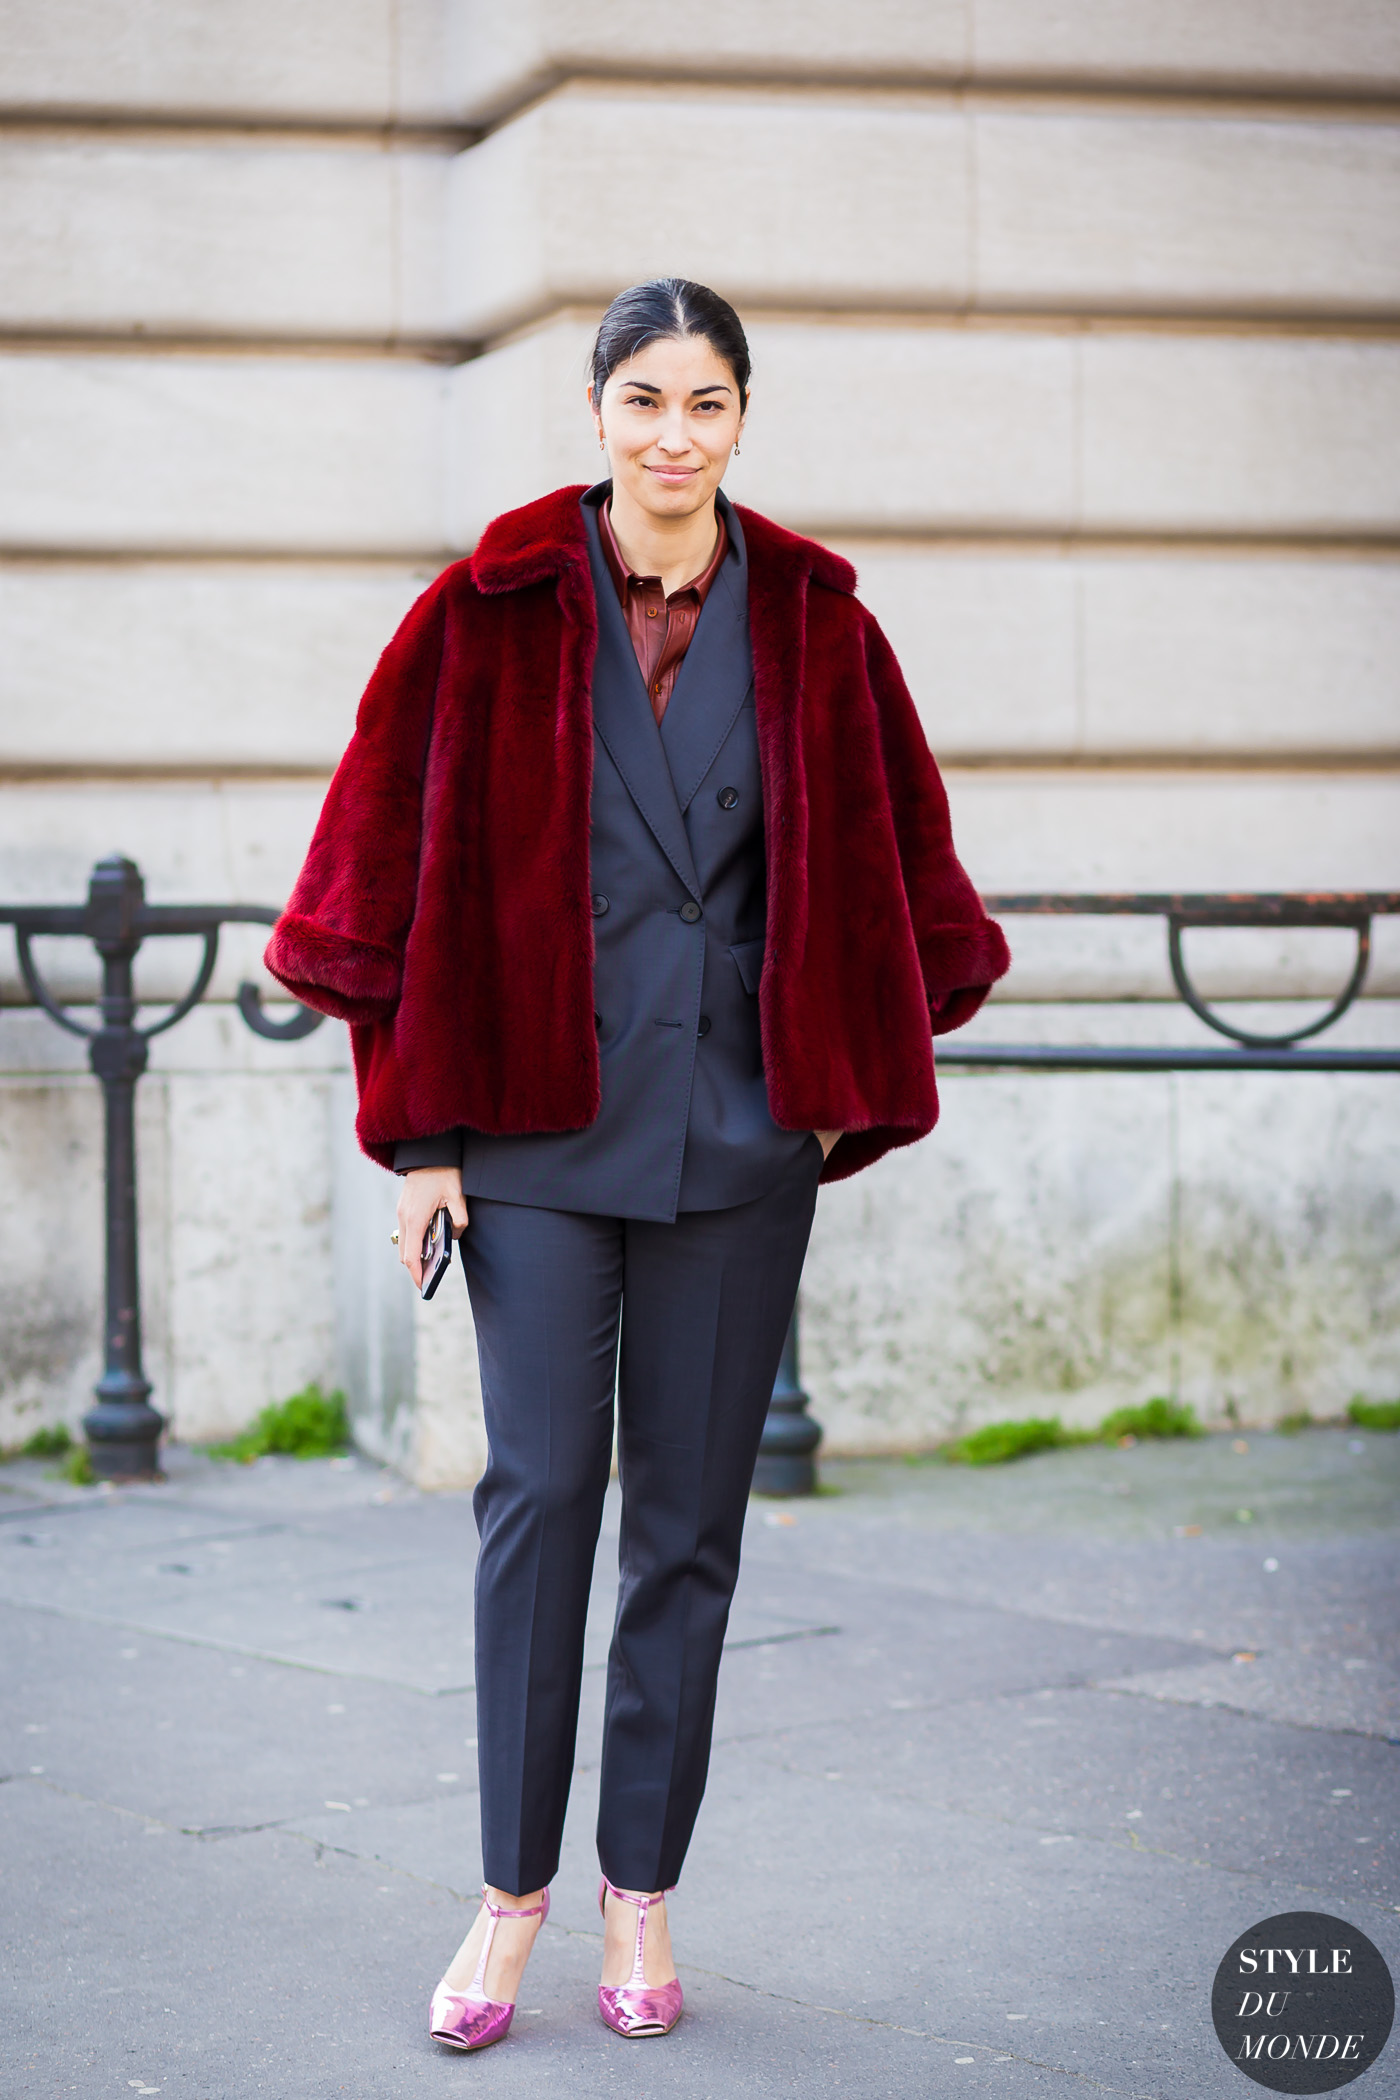 Caroline Issa Street Style Street Fashion Streetsnaps by STYLEDUMONDE Street Style Fashion Photography